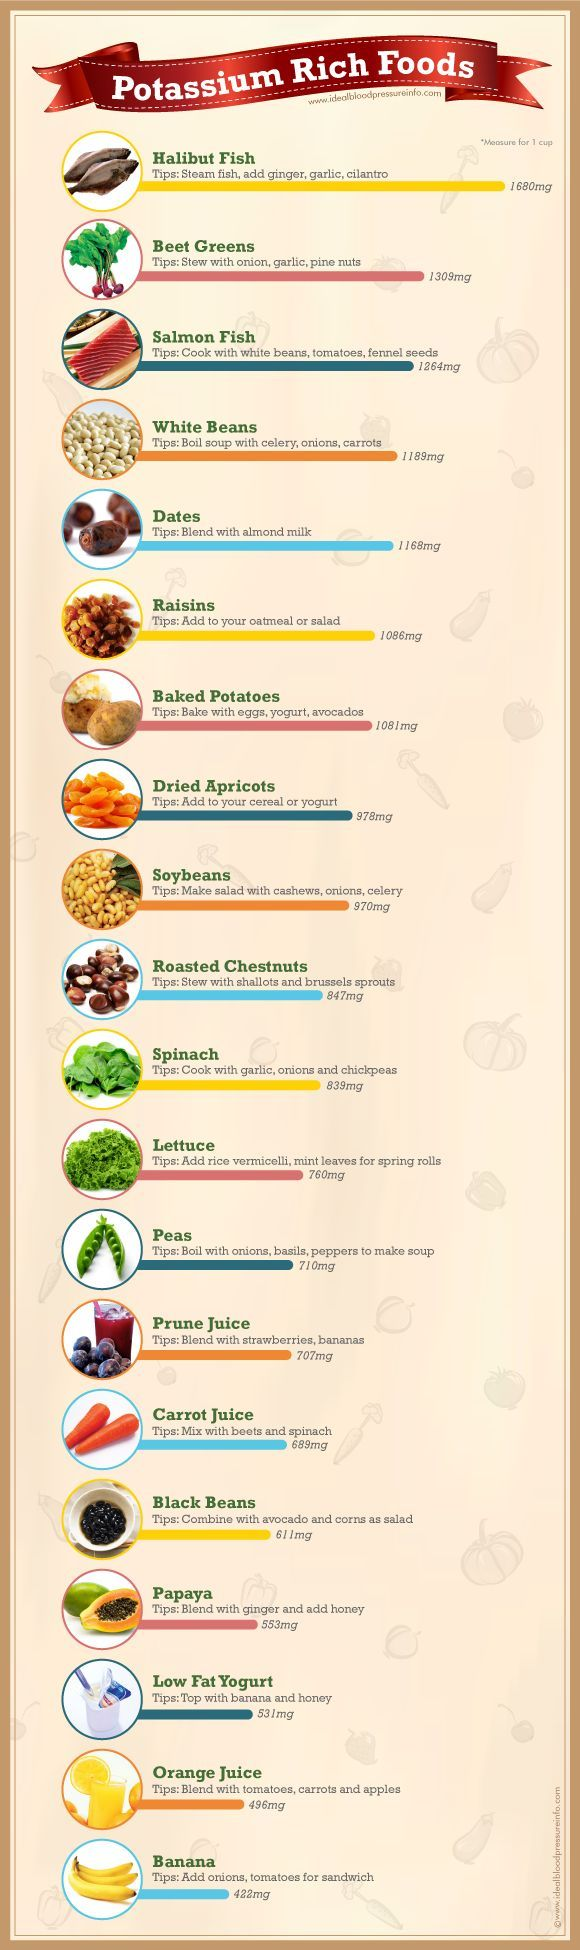 Potassium, the warrior against high blood pressure. These are the foods rich in Potassium............................................................